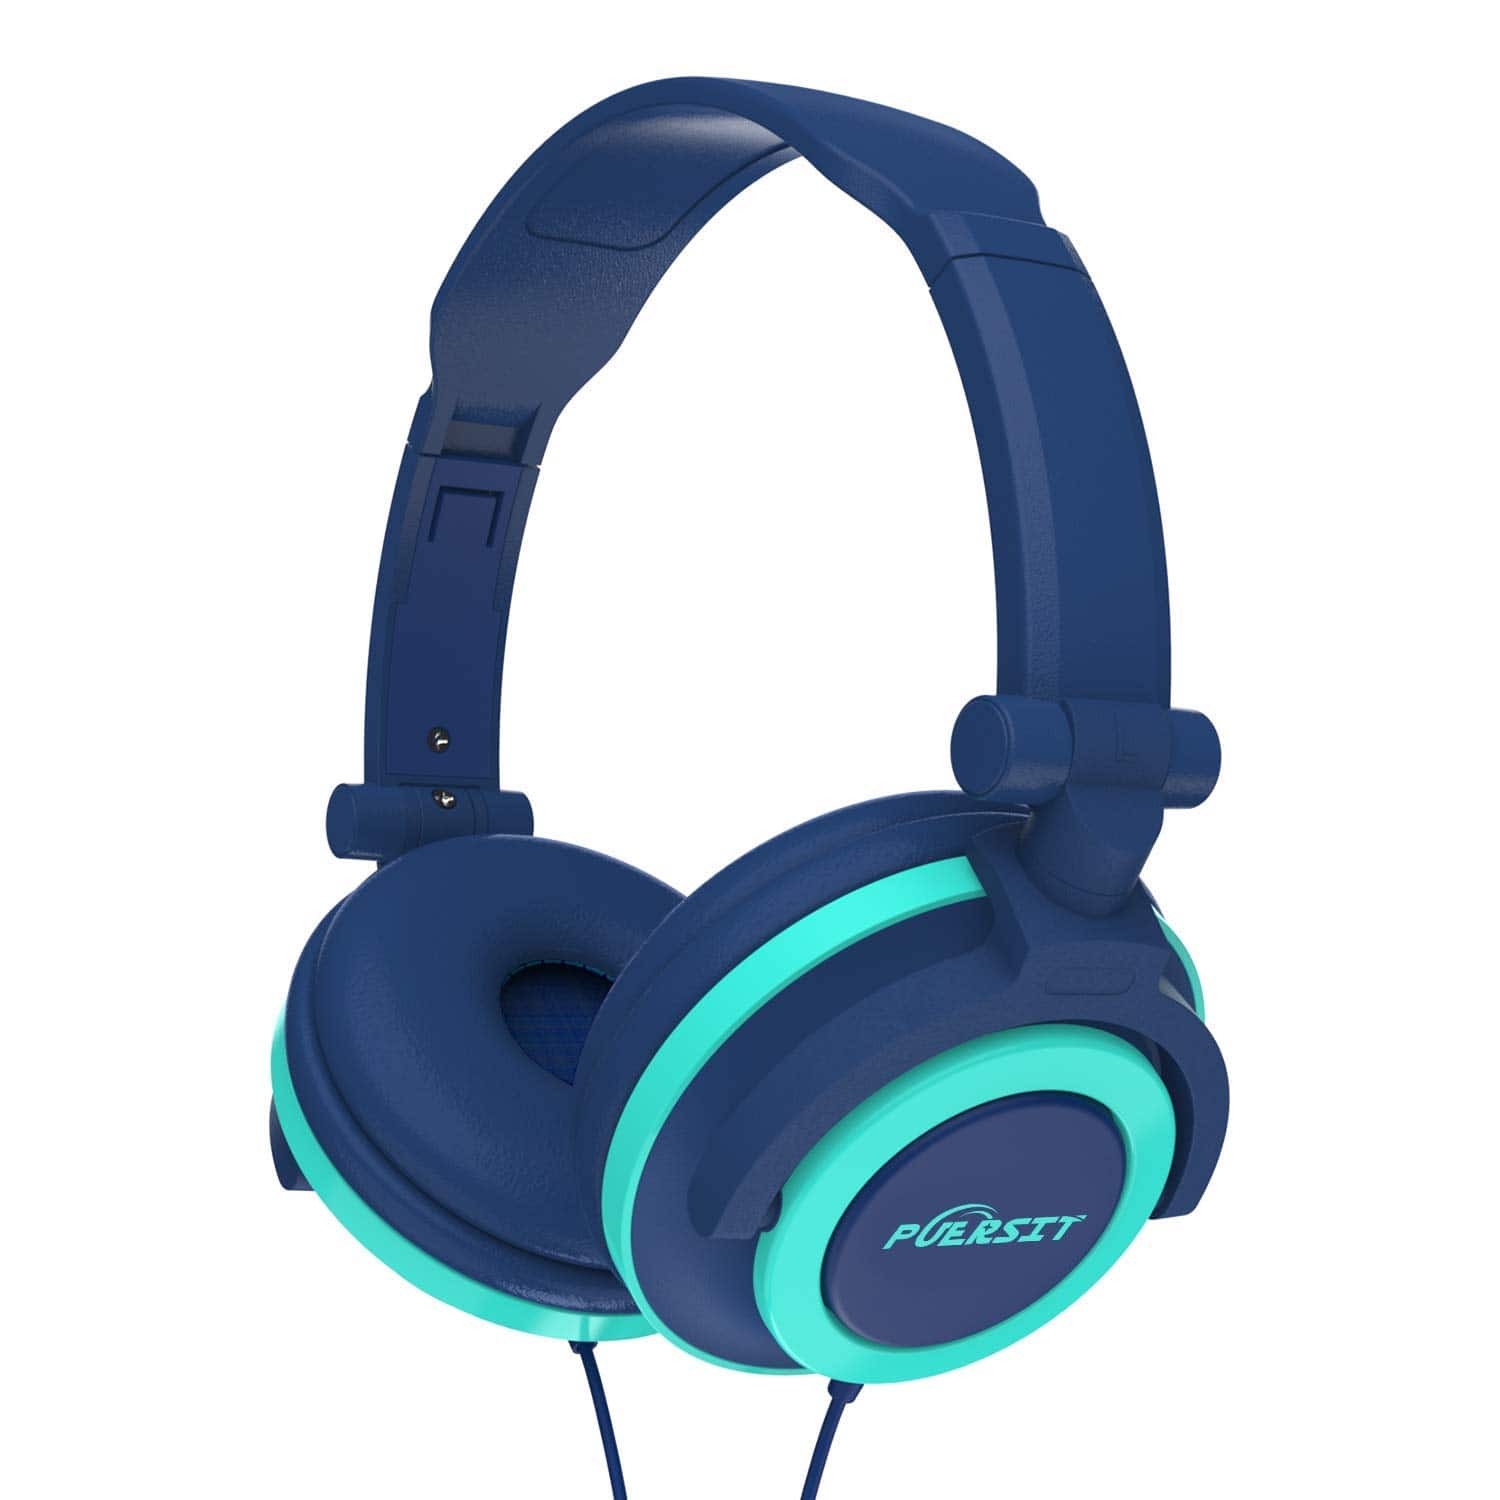 35%off PUERSIT Headphones for Kids, Stereo Bass Earphones Over Ear Headsets 3.5mm Jack for Children Blue and Pink $9.74